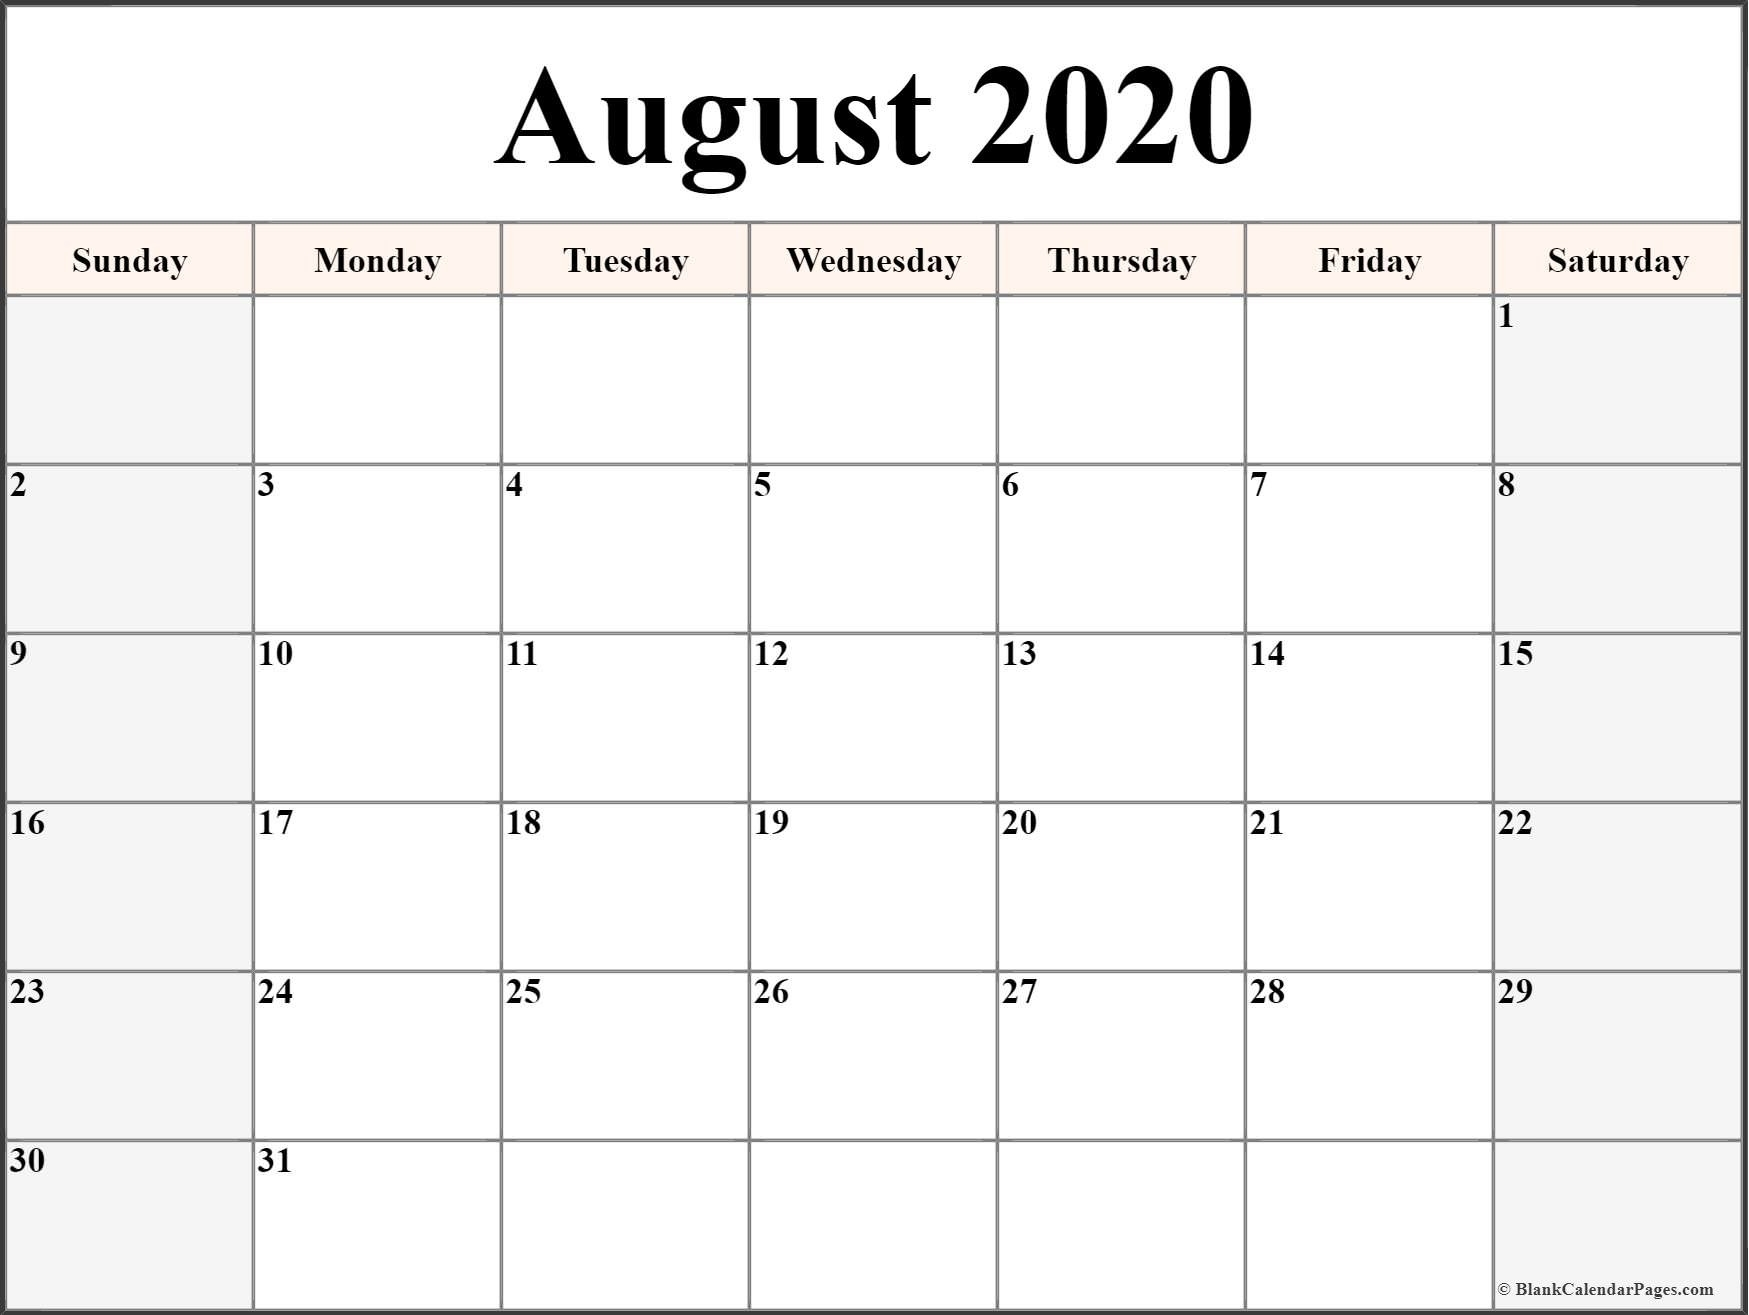 August 2020 Calendar | Free Printable Monthly Calendars-August 2020 Thru December 2020 Calendar Template